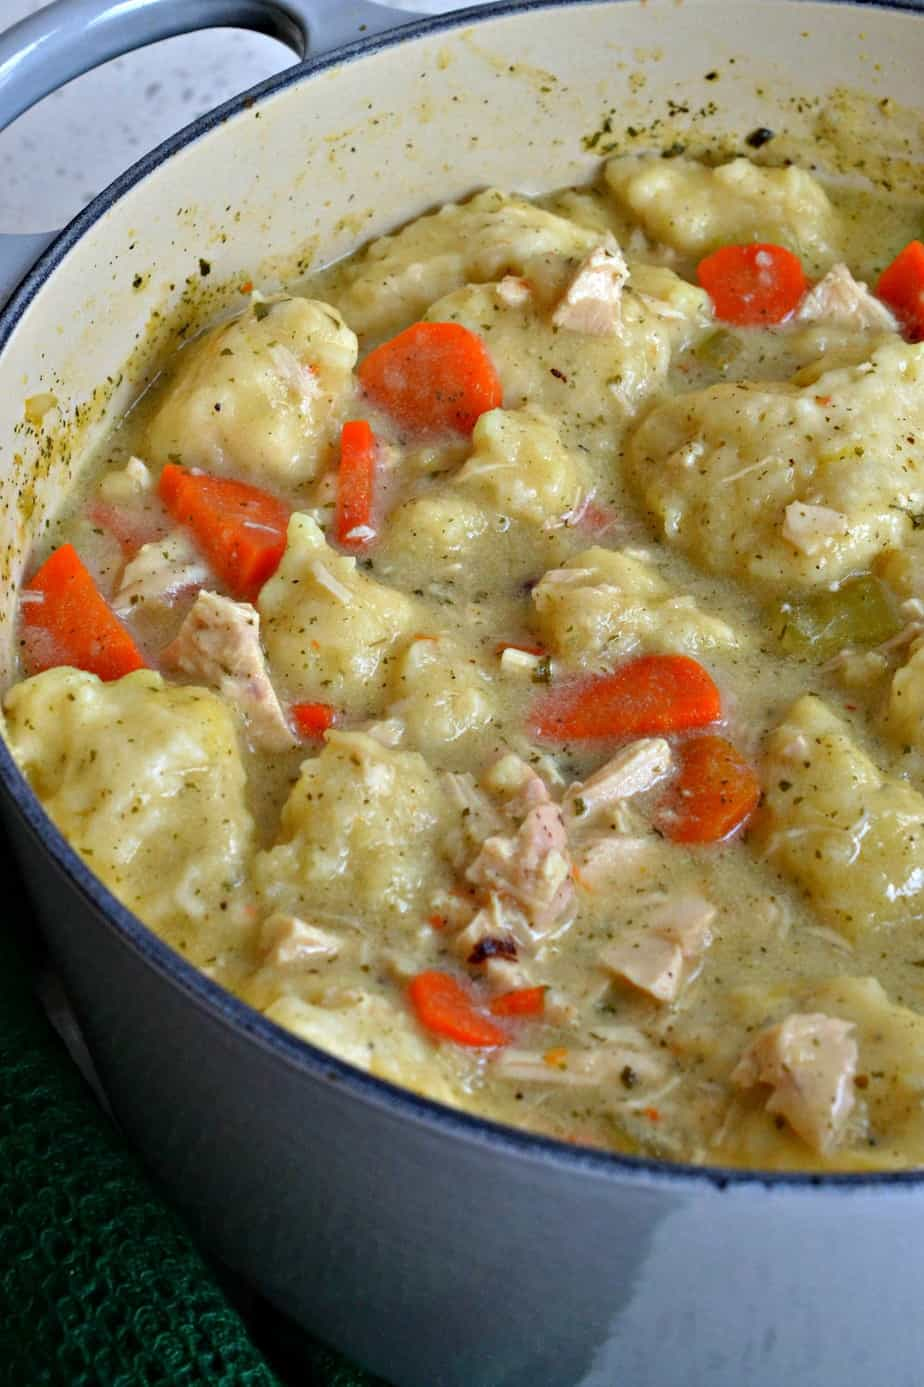 This Chicken and Dumpling Soup recipe is made with creamy broth, succulent chicken, sweet carrots and light fluffy dumplings.